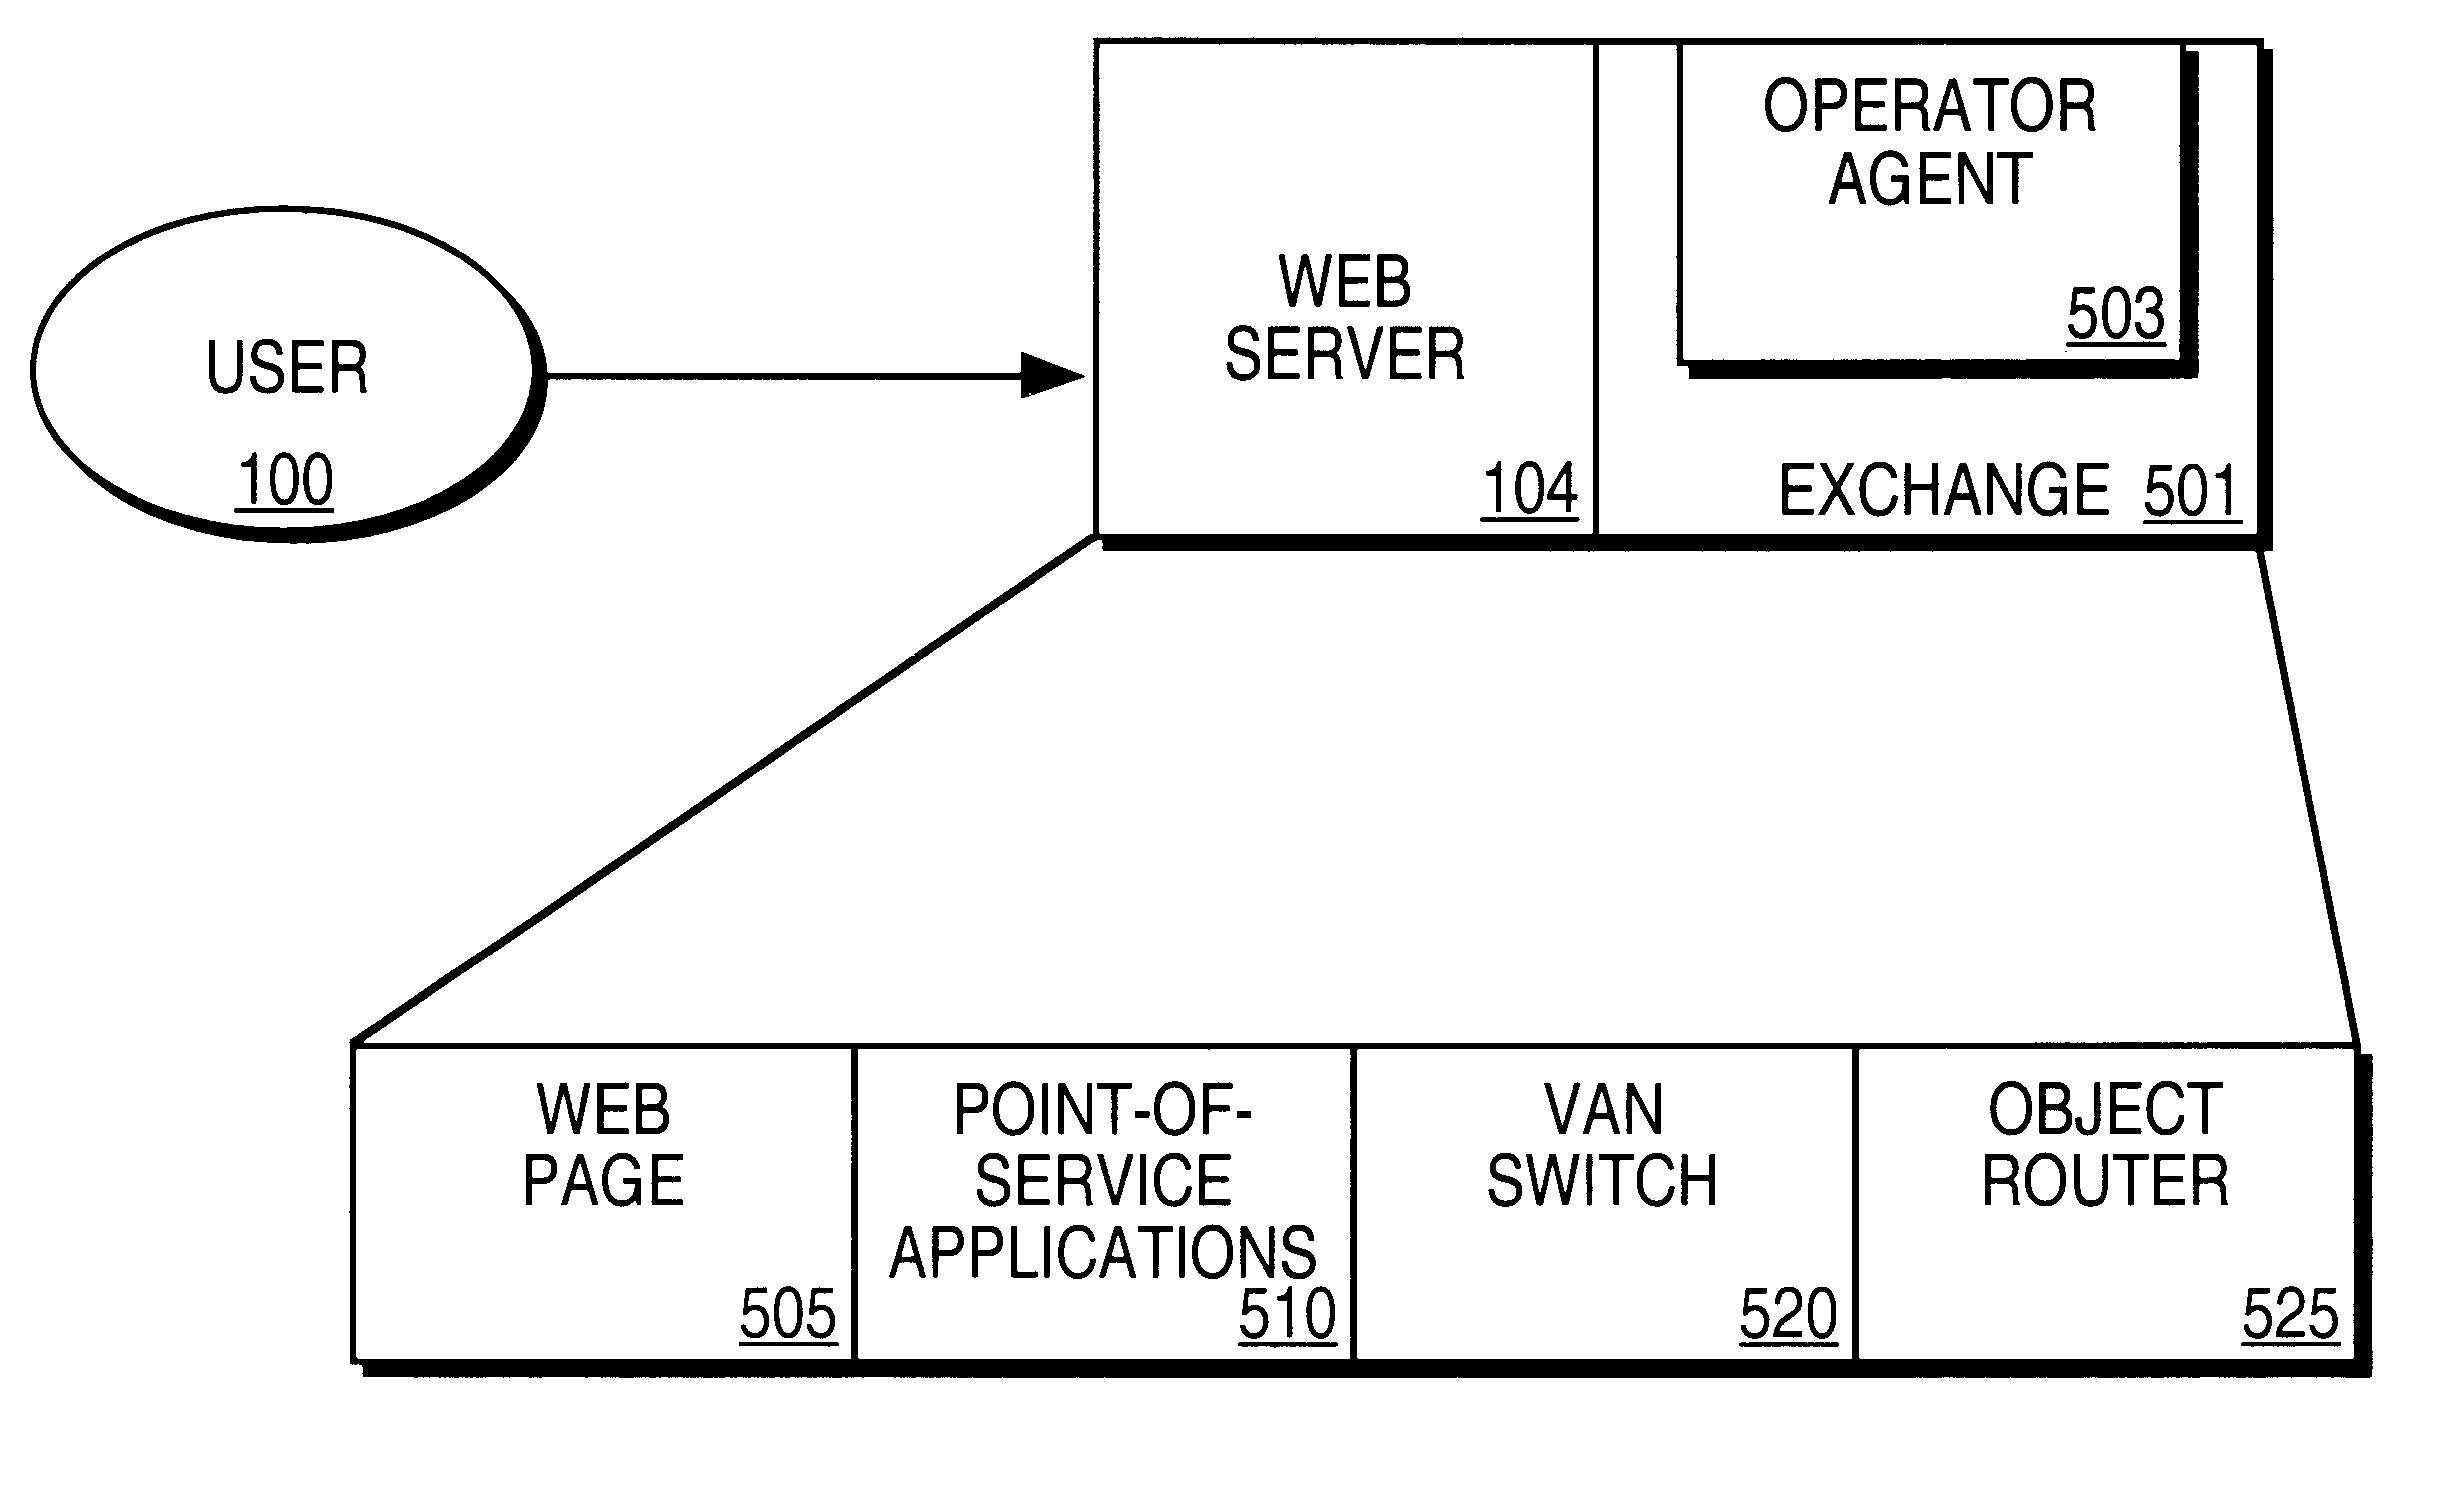 Patent Us 6212556 B1 Between Statechart And Sequence Diagram Programmers Stack Exchange First Claim